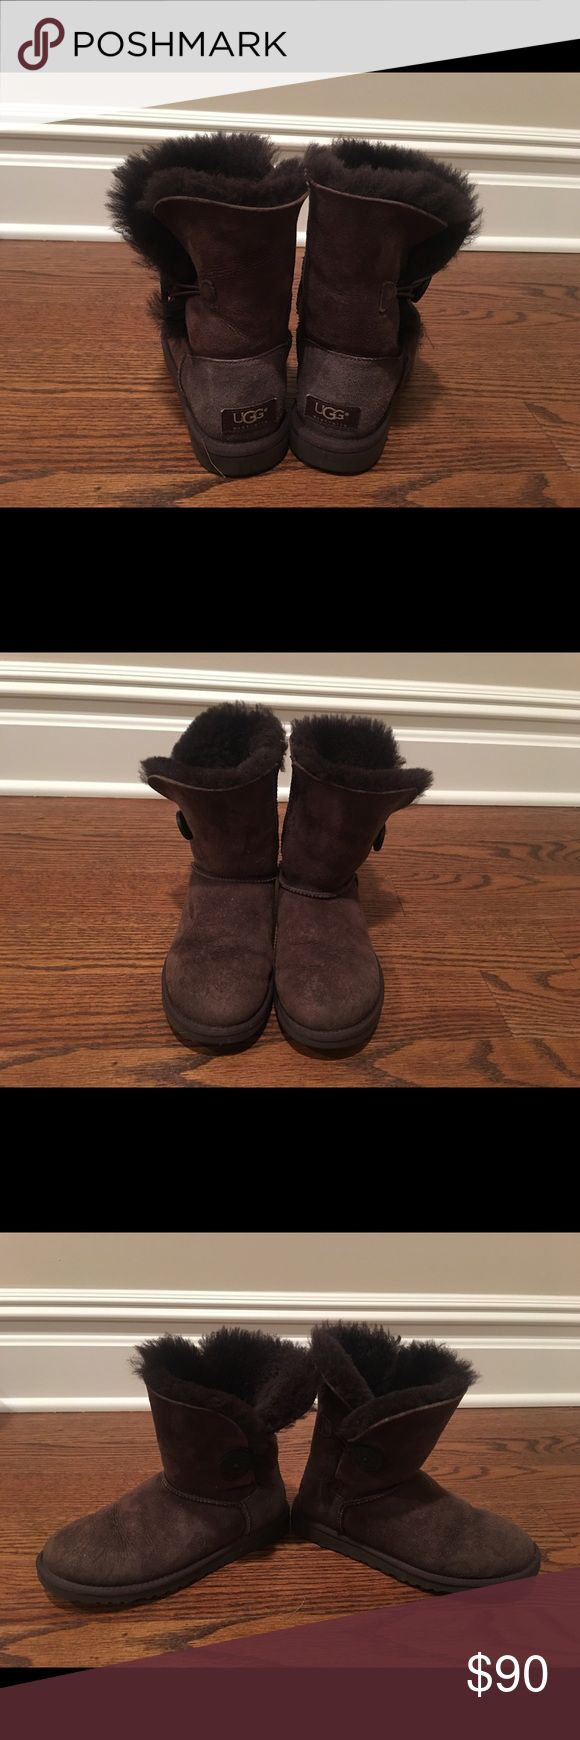 Ugg short boots Ugh short boots classic style. Very good condition, wore only a few times ( bought slightly small for my feet). Size w5, chestnut color. Please note Ugg boots runs big, this is a size 5 but fits like a 6. Please make sure this is the right size for you ( try one in the store if you are not familiar with Ugg size) before making an offer. UGG Shoes Winter & Rain Boots